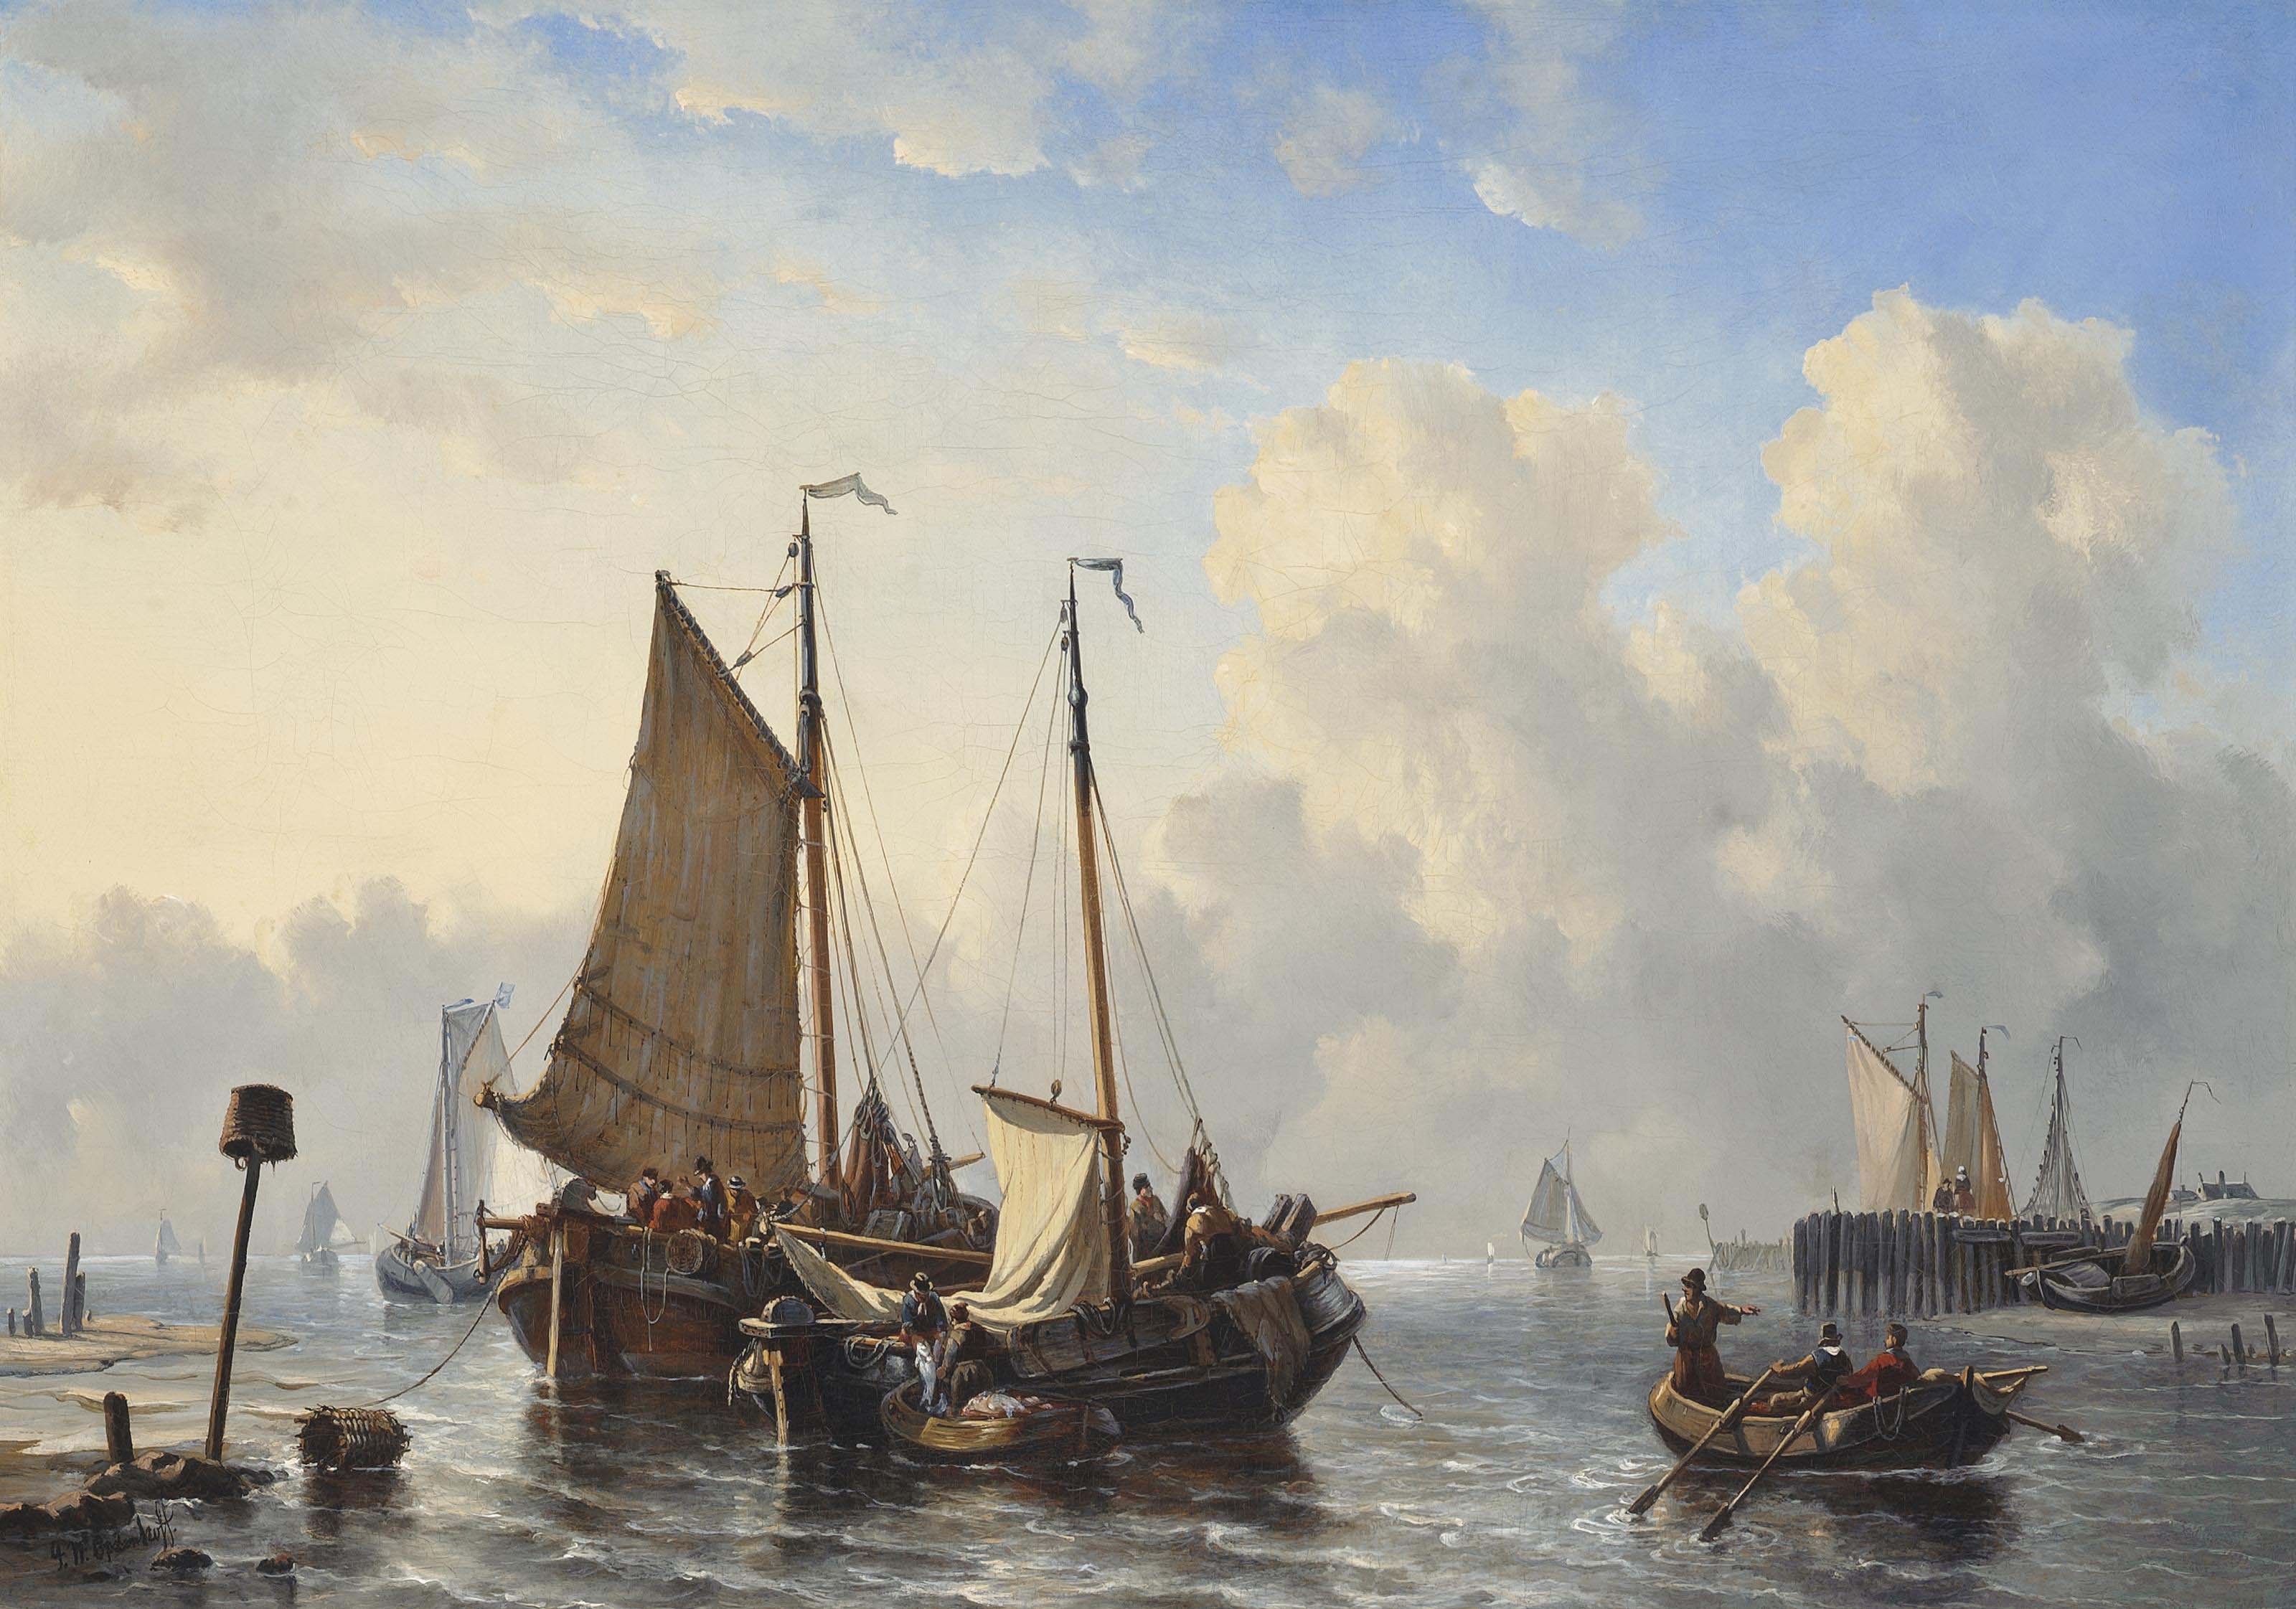 Unloading the day's catch off the coast of the Low Countries